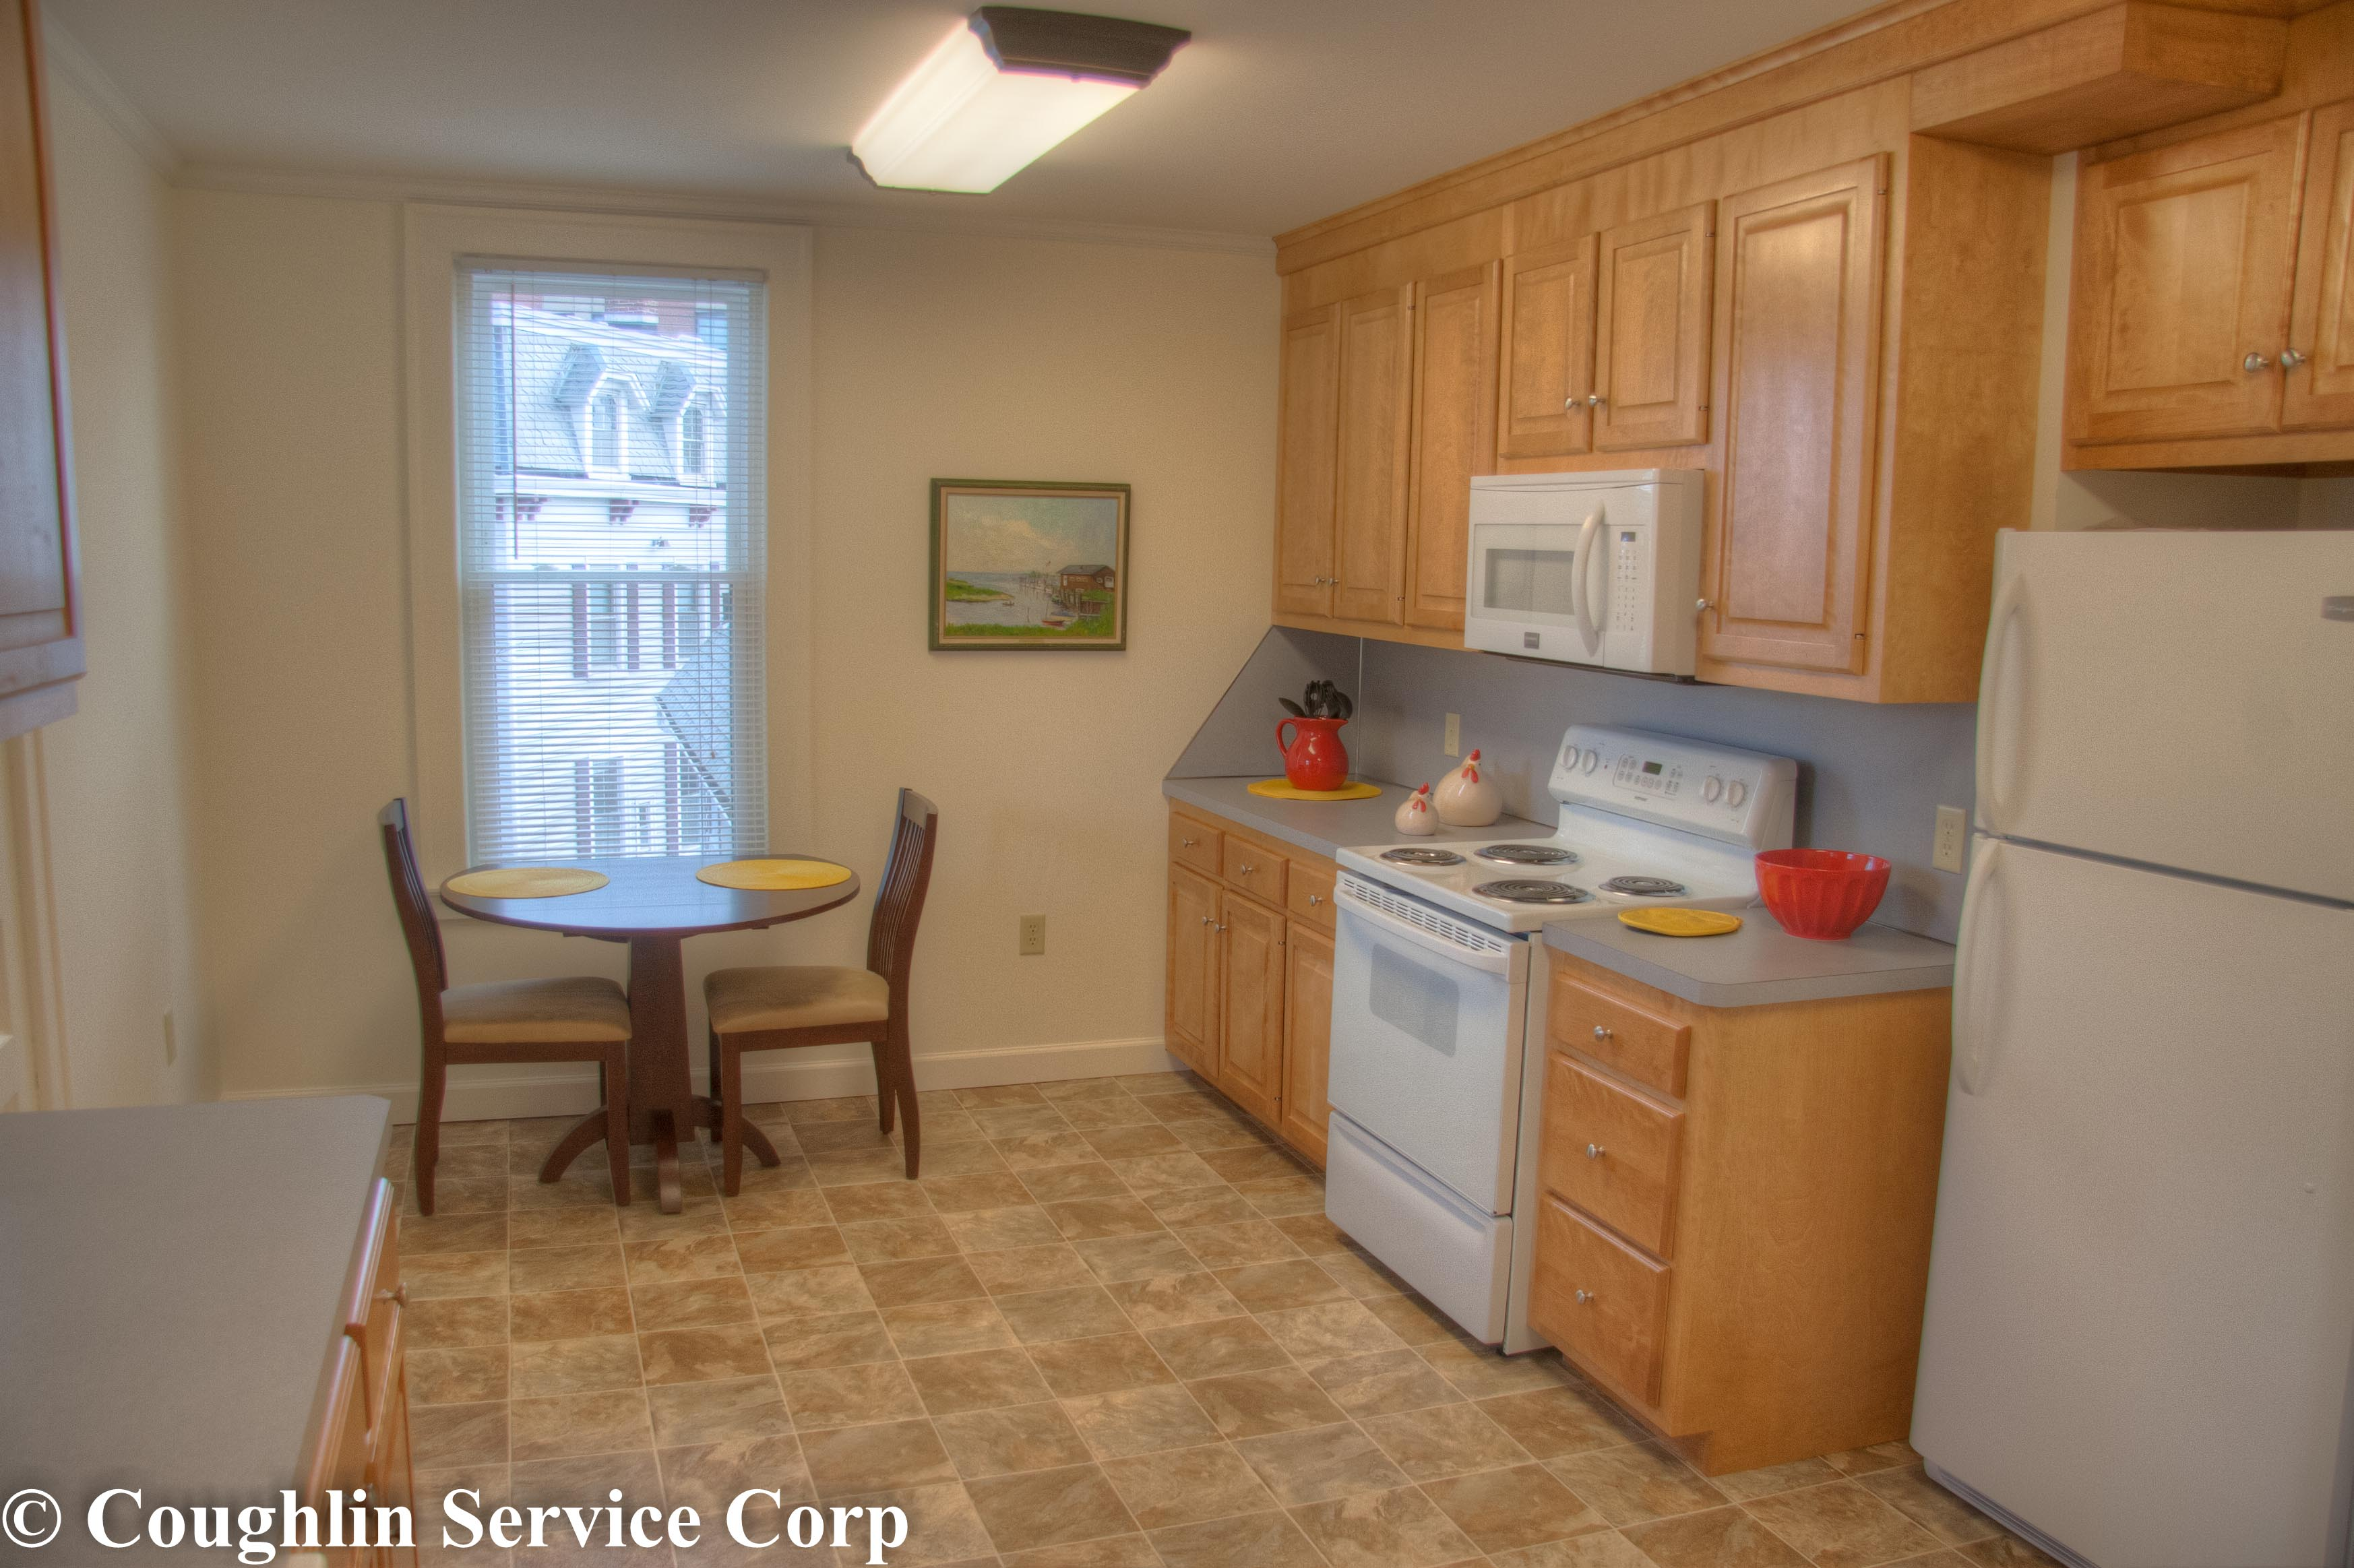 Coughlin Service Corp Kitchen Renovation Builder